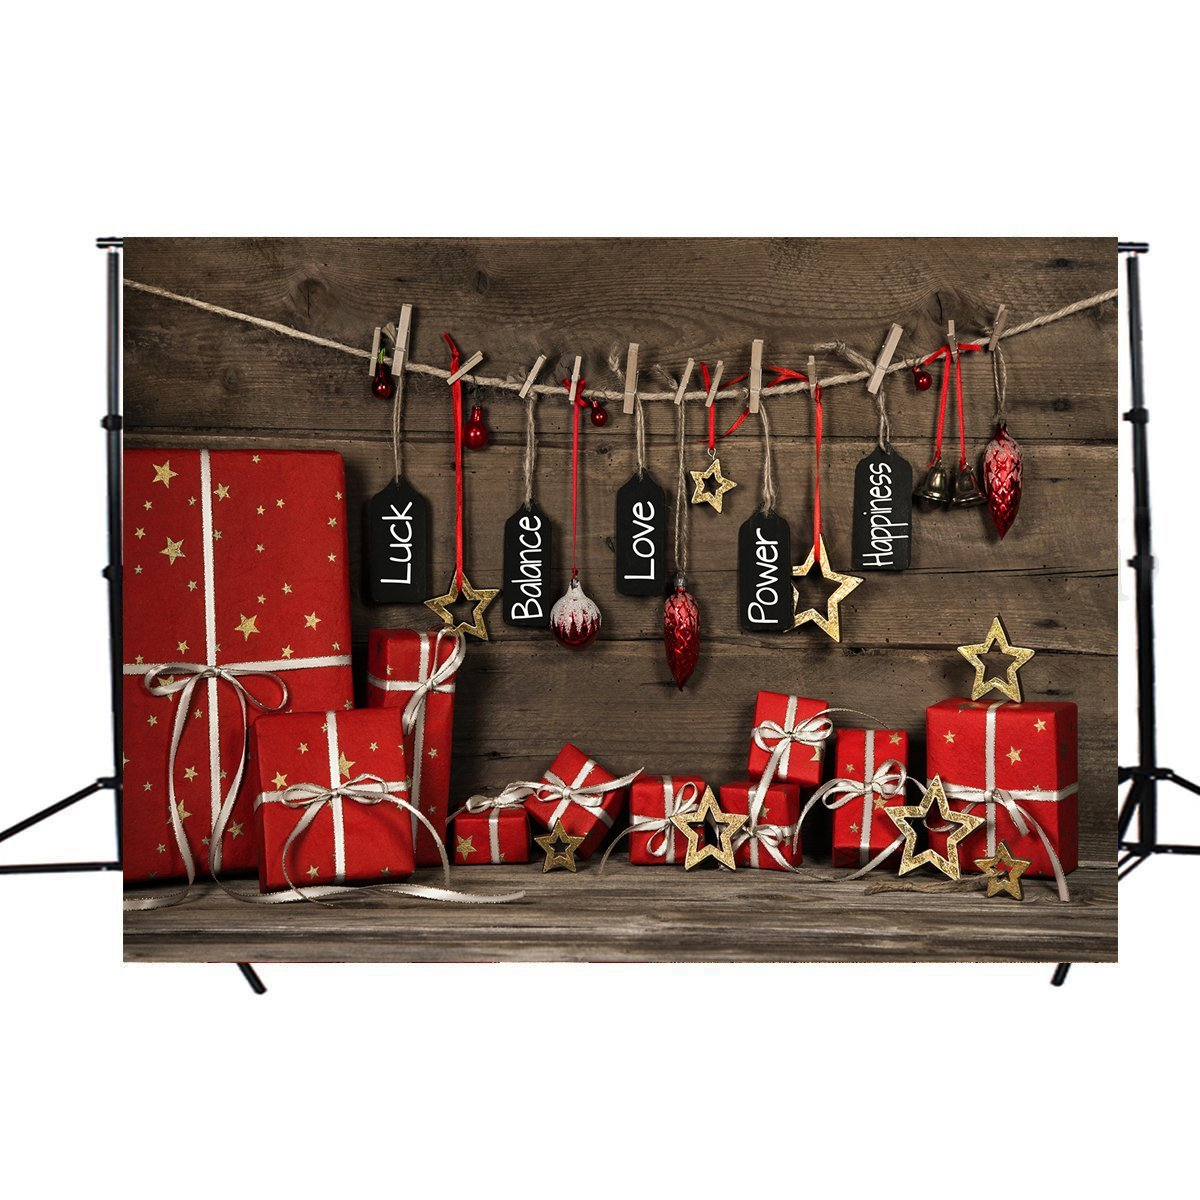 ABPHOTO Polyester Photography Background 7x5ft Merry Christmas Christmas Gifts Photography Photo Backdrop For Photographers